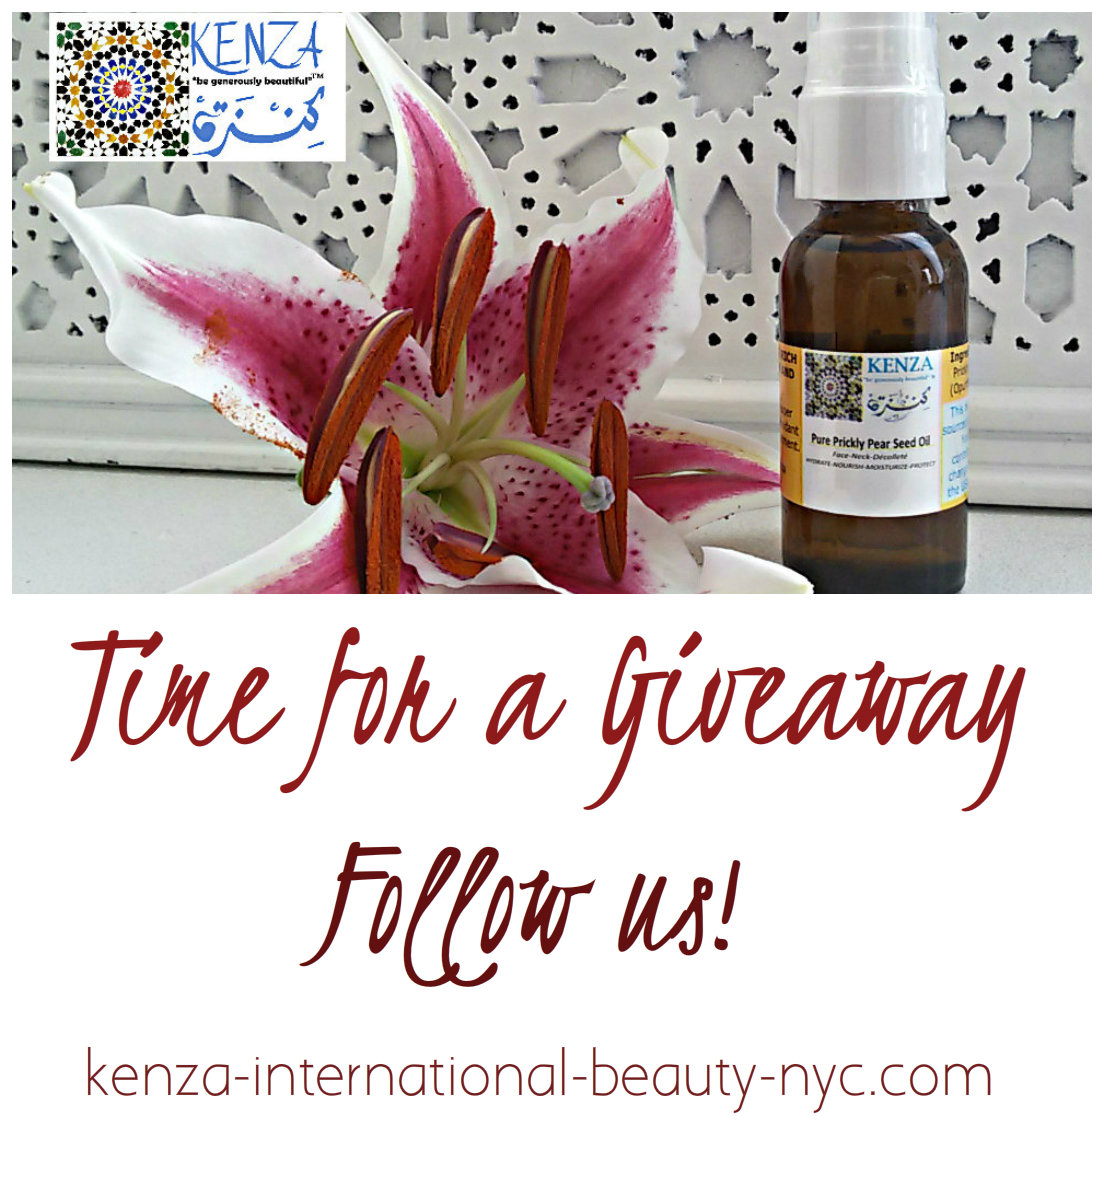 KENZA-Pure-Prickly-Pear-Seed-Oil-Giveaway!